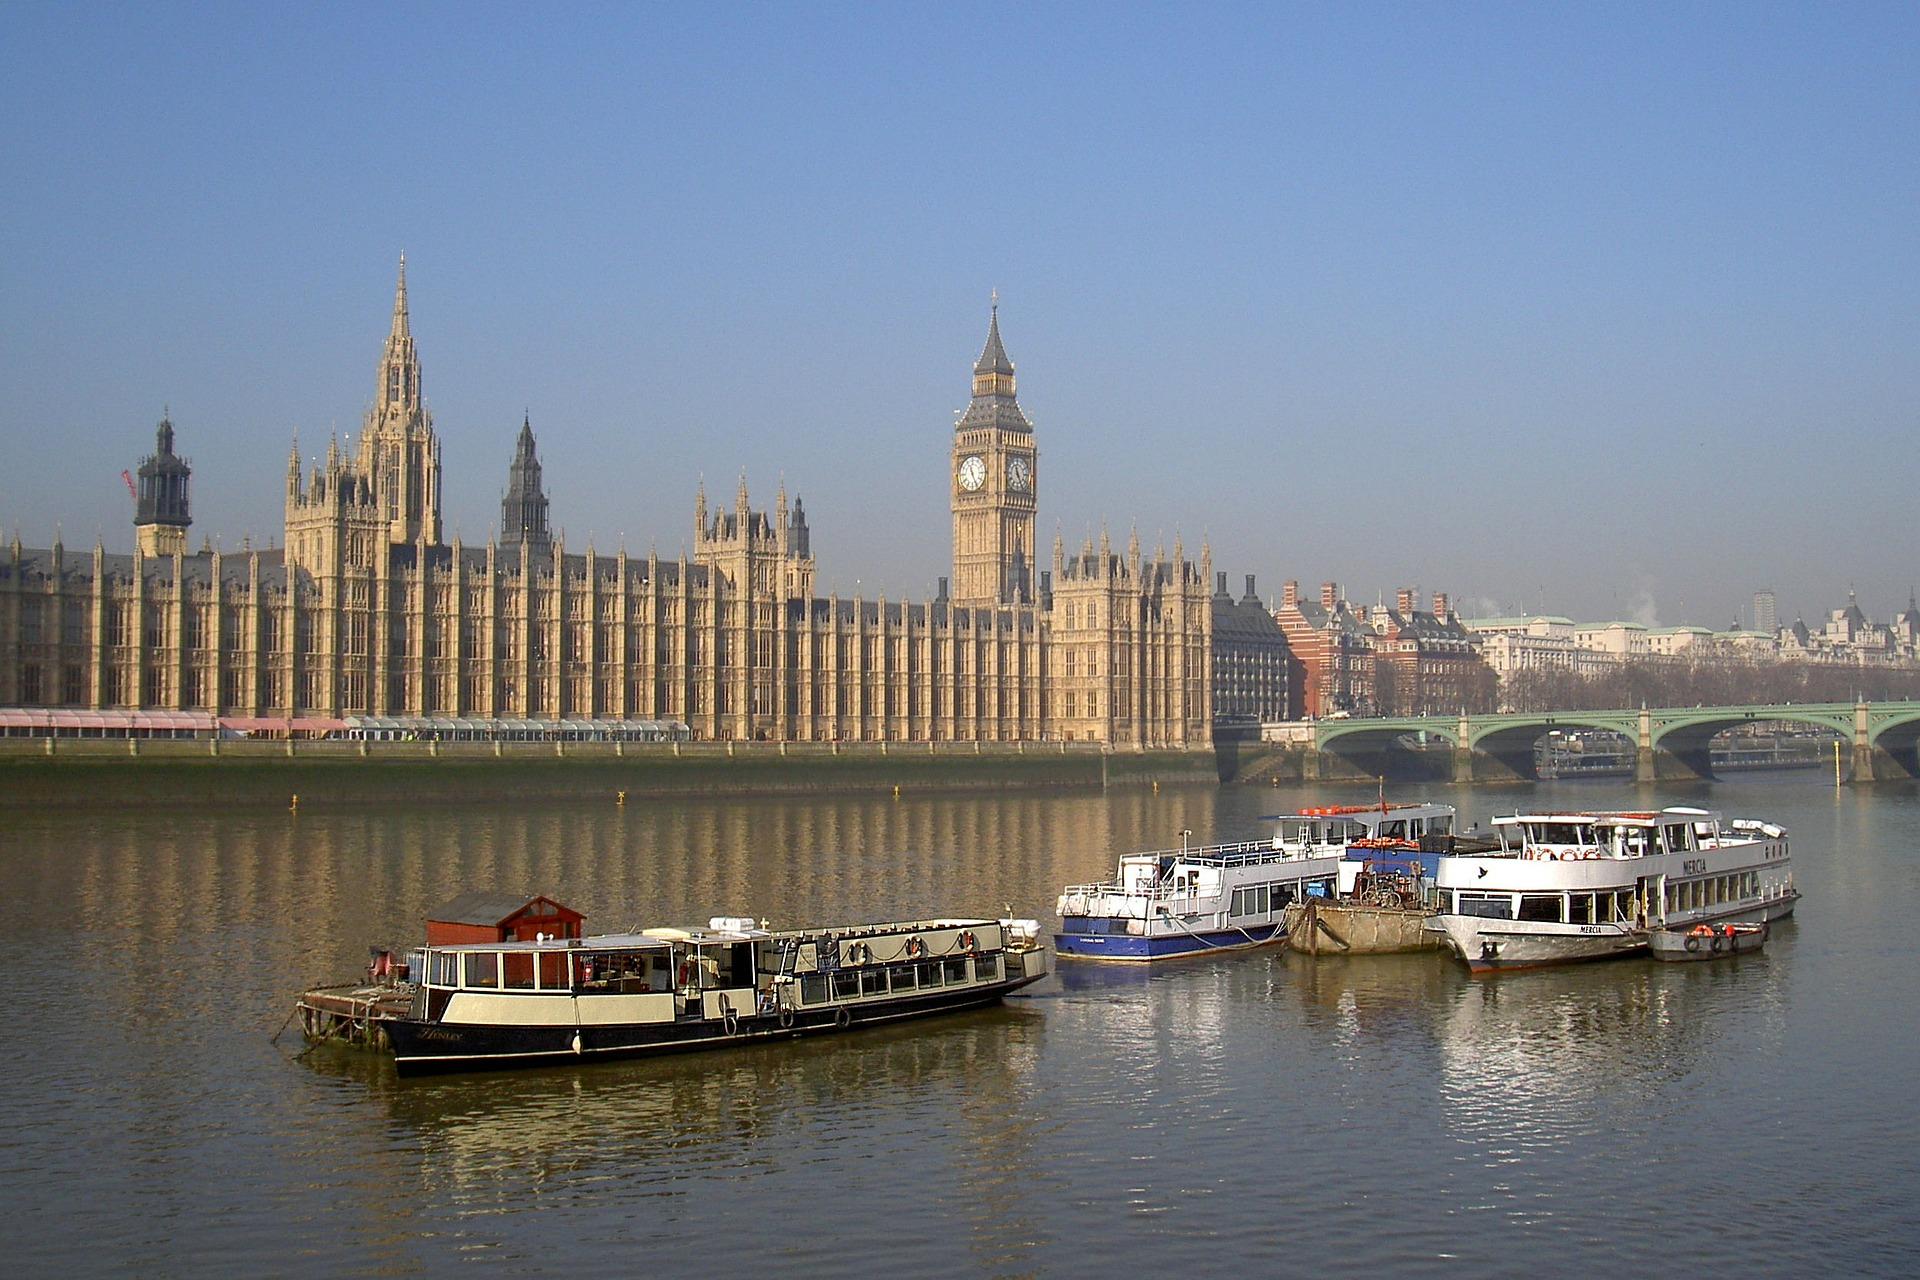 Thames Clippers operates river bus routes frequently